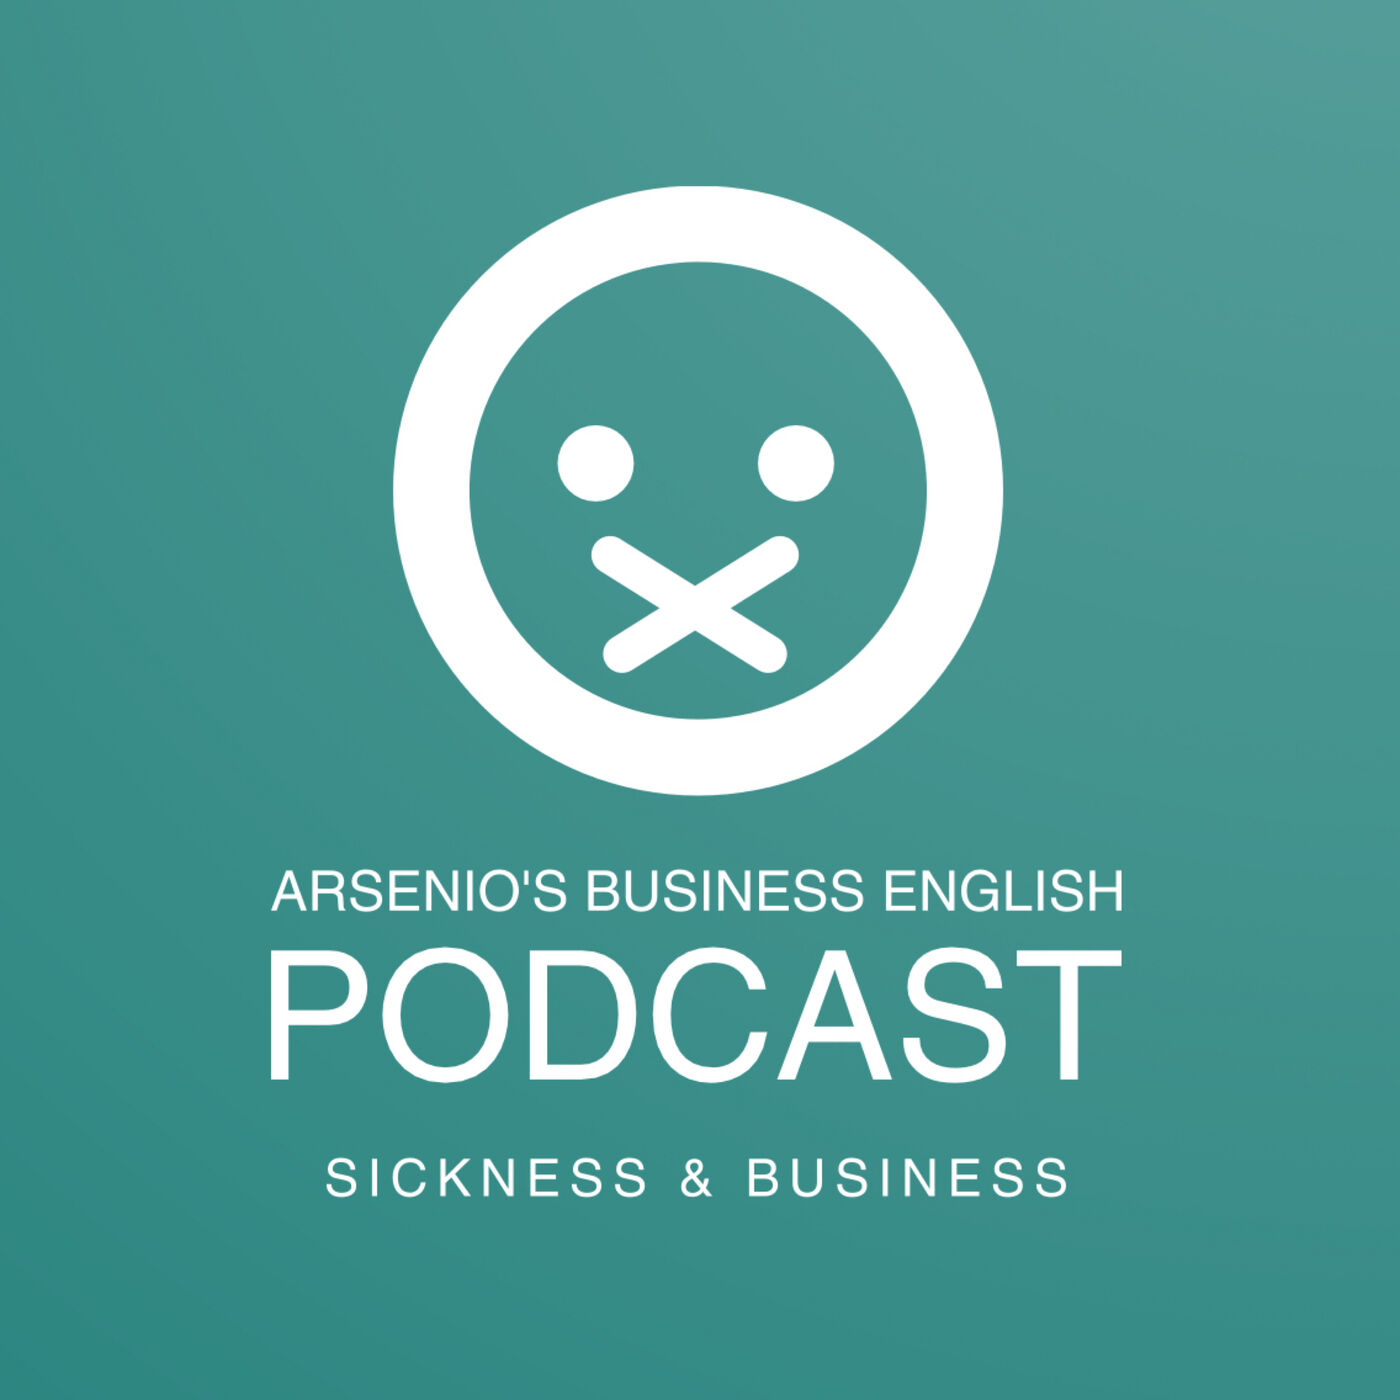 Arsenio's Business English Podcast | Season 6: Episode 30 | Sickness & Business